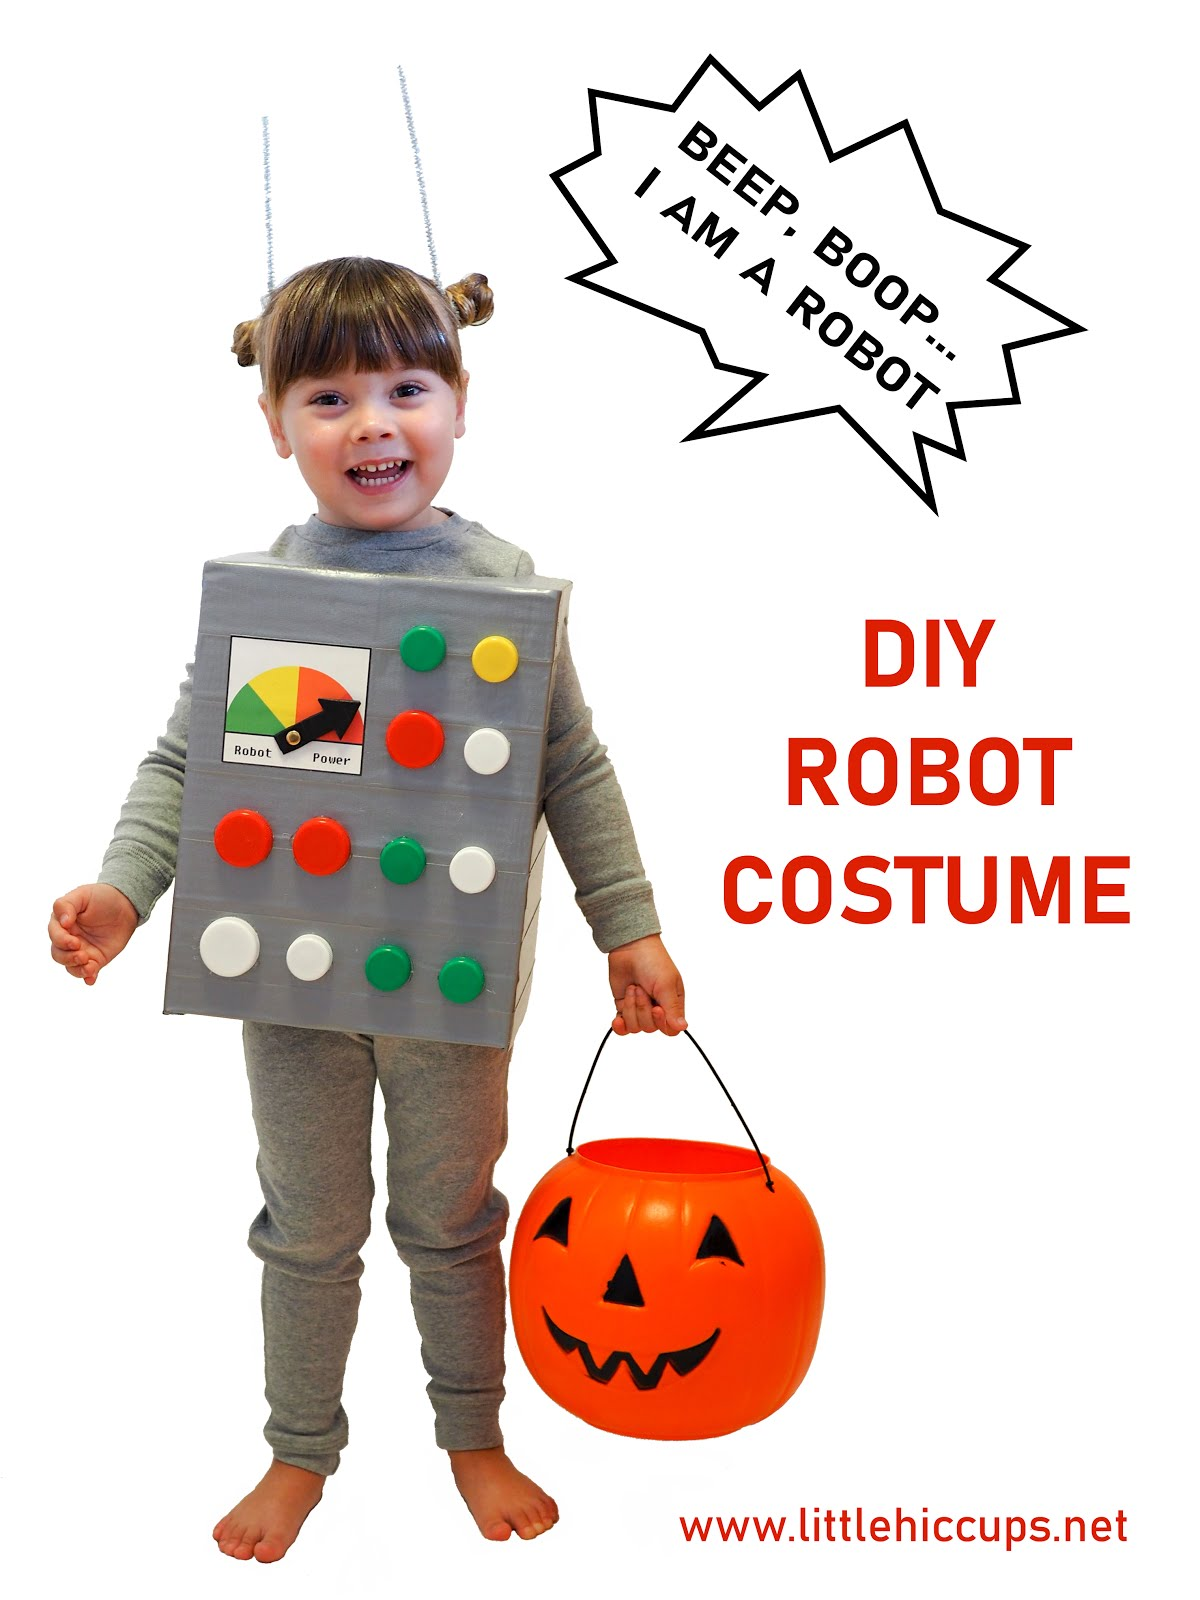 Simple DIY Robot Costume